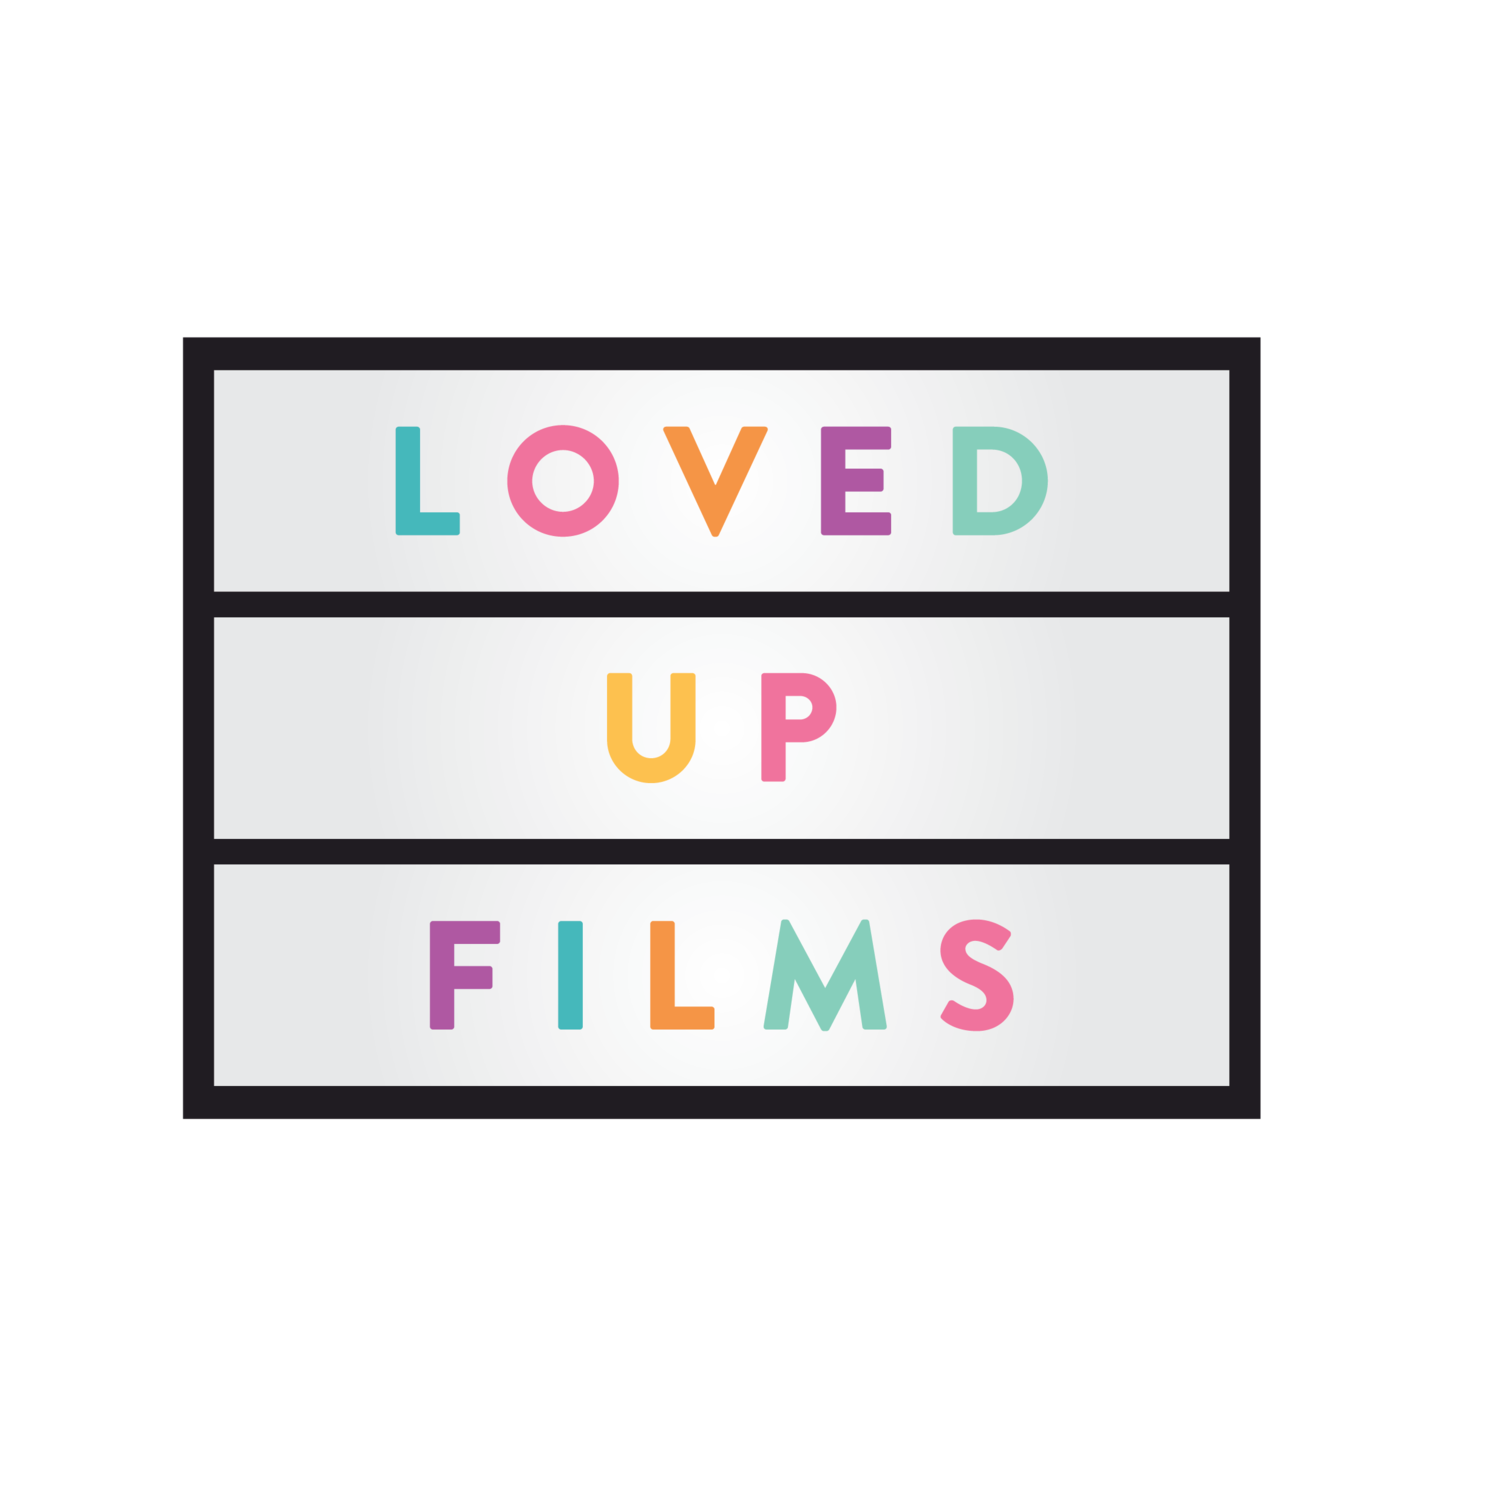 LOVED UP FILMS